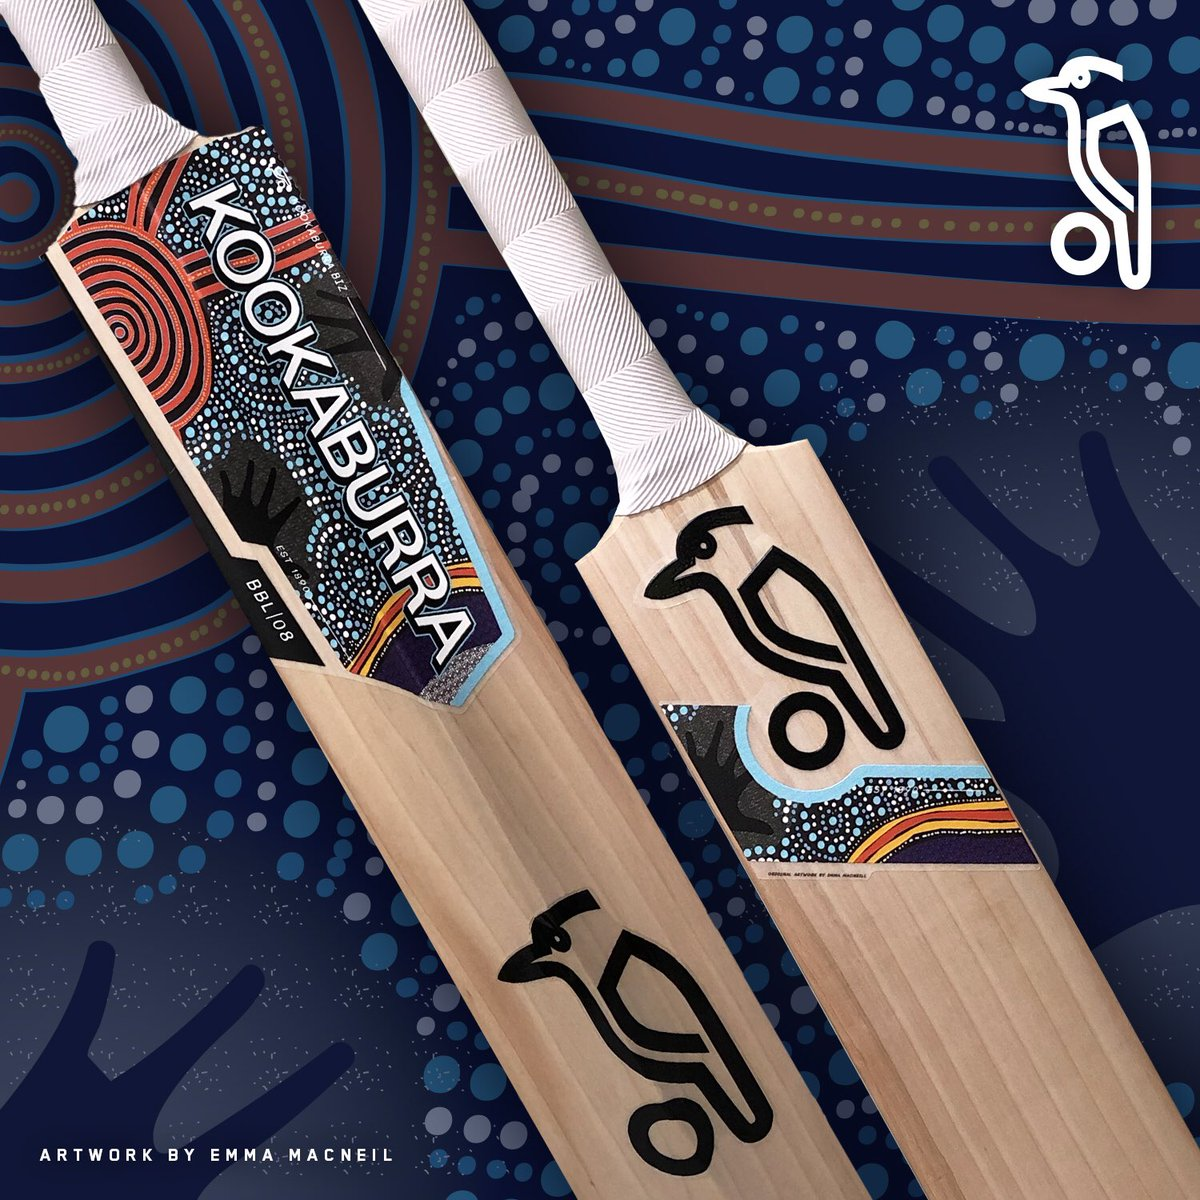 This Is A One Off Bat Designed To Promote Indigenous Cricket And Help Dan S Campaign For Bbl Round Next Season Foxcricket